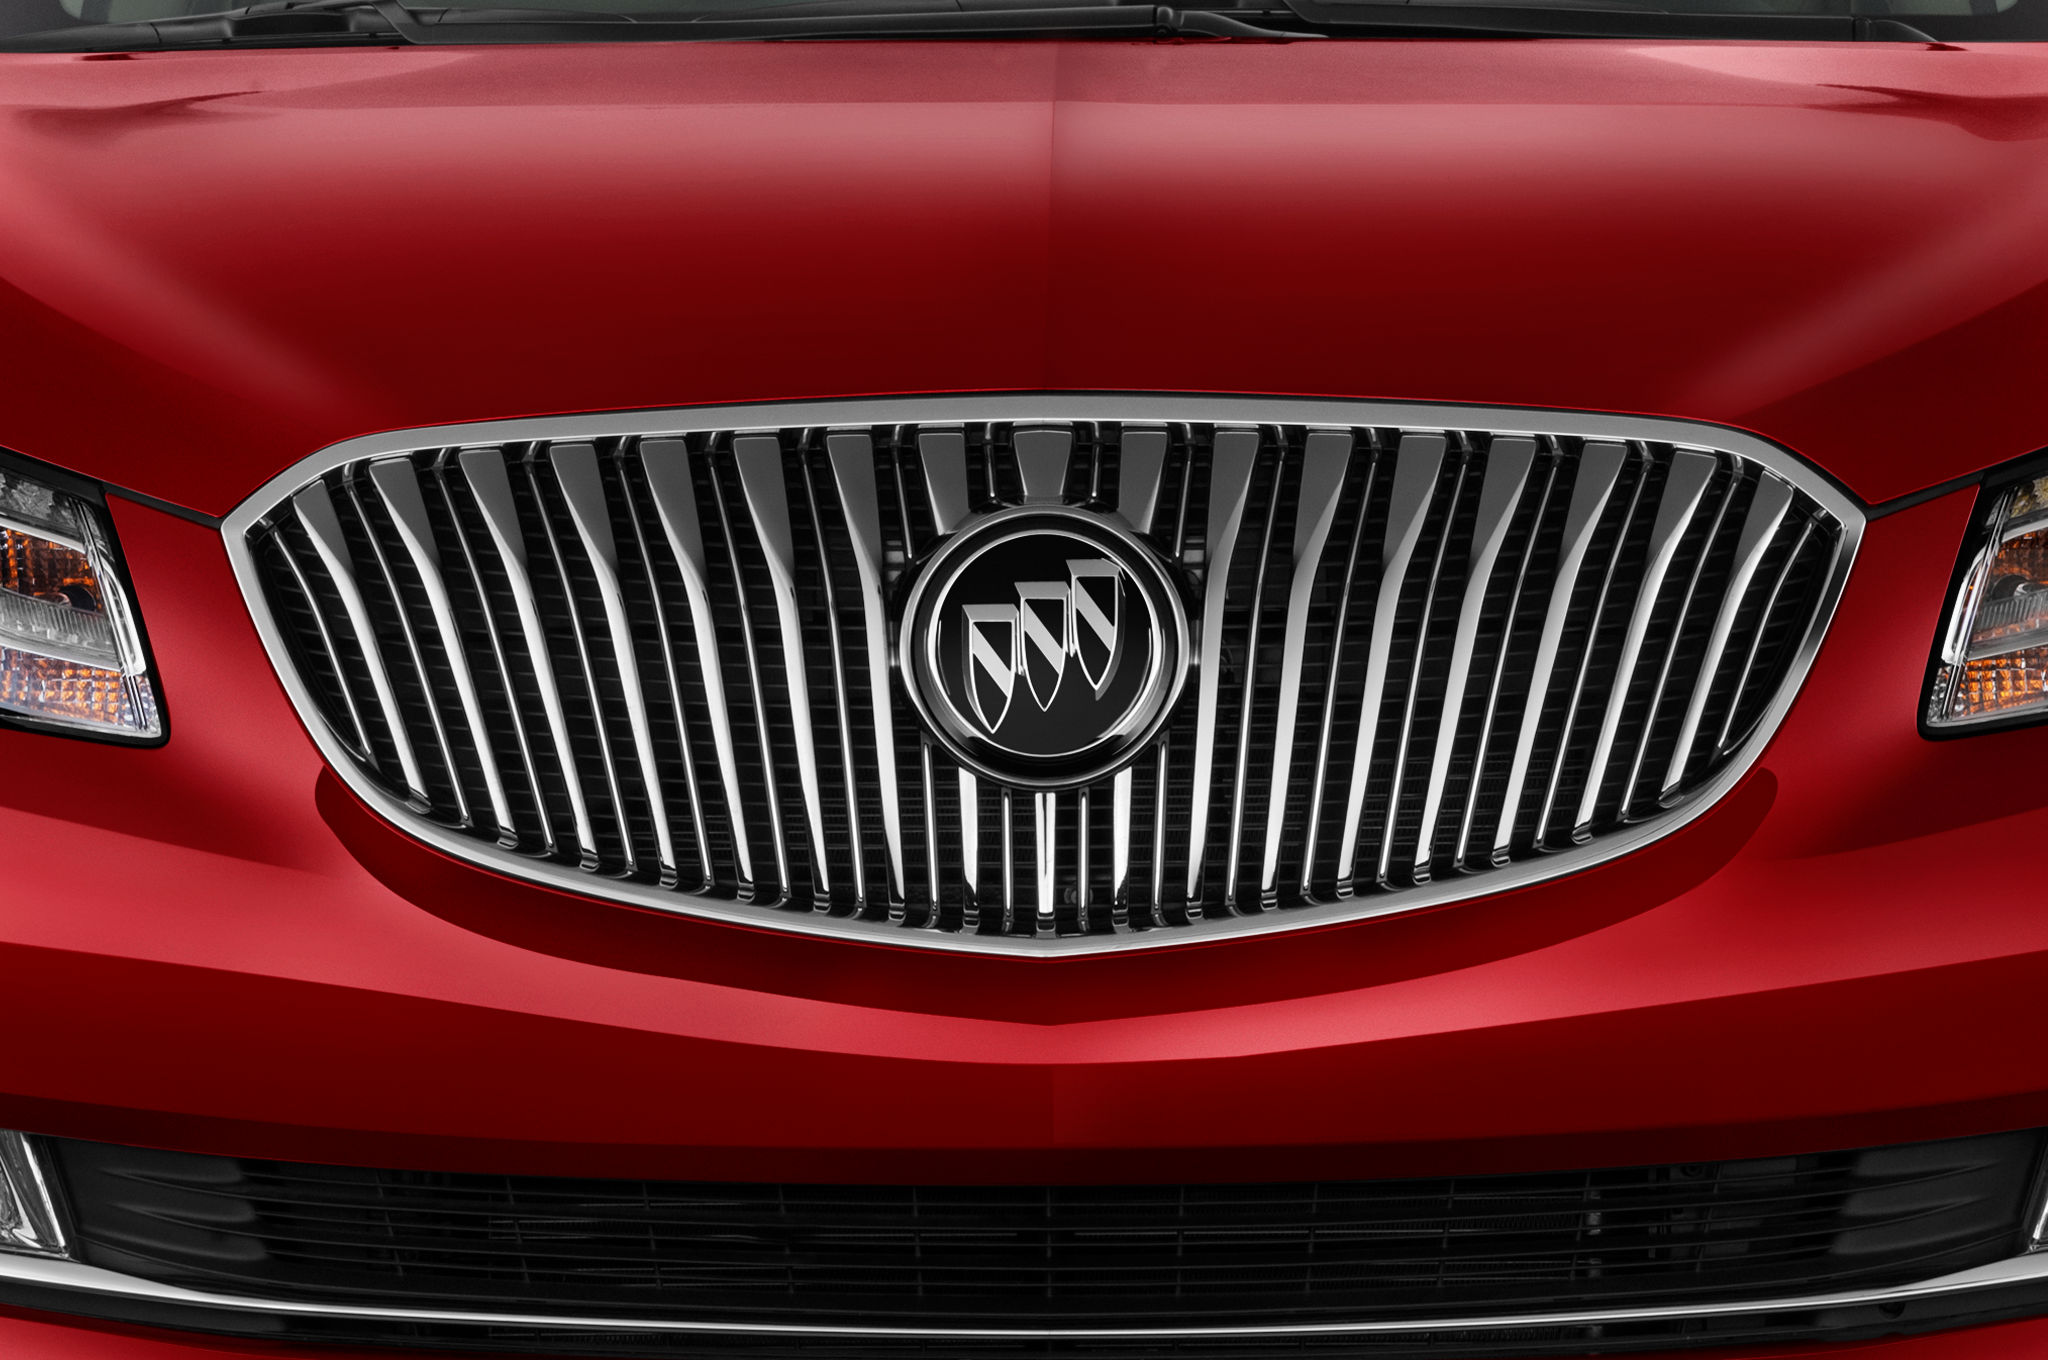 2014 buick lacrosse priced from 34060